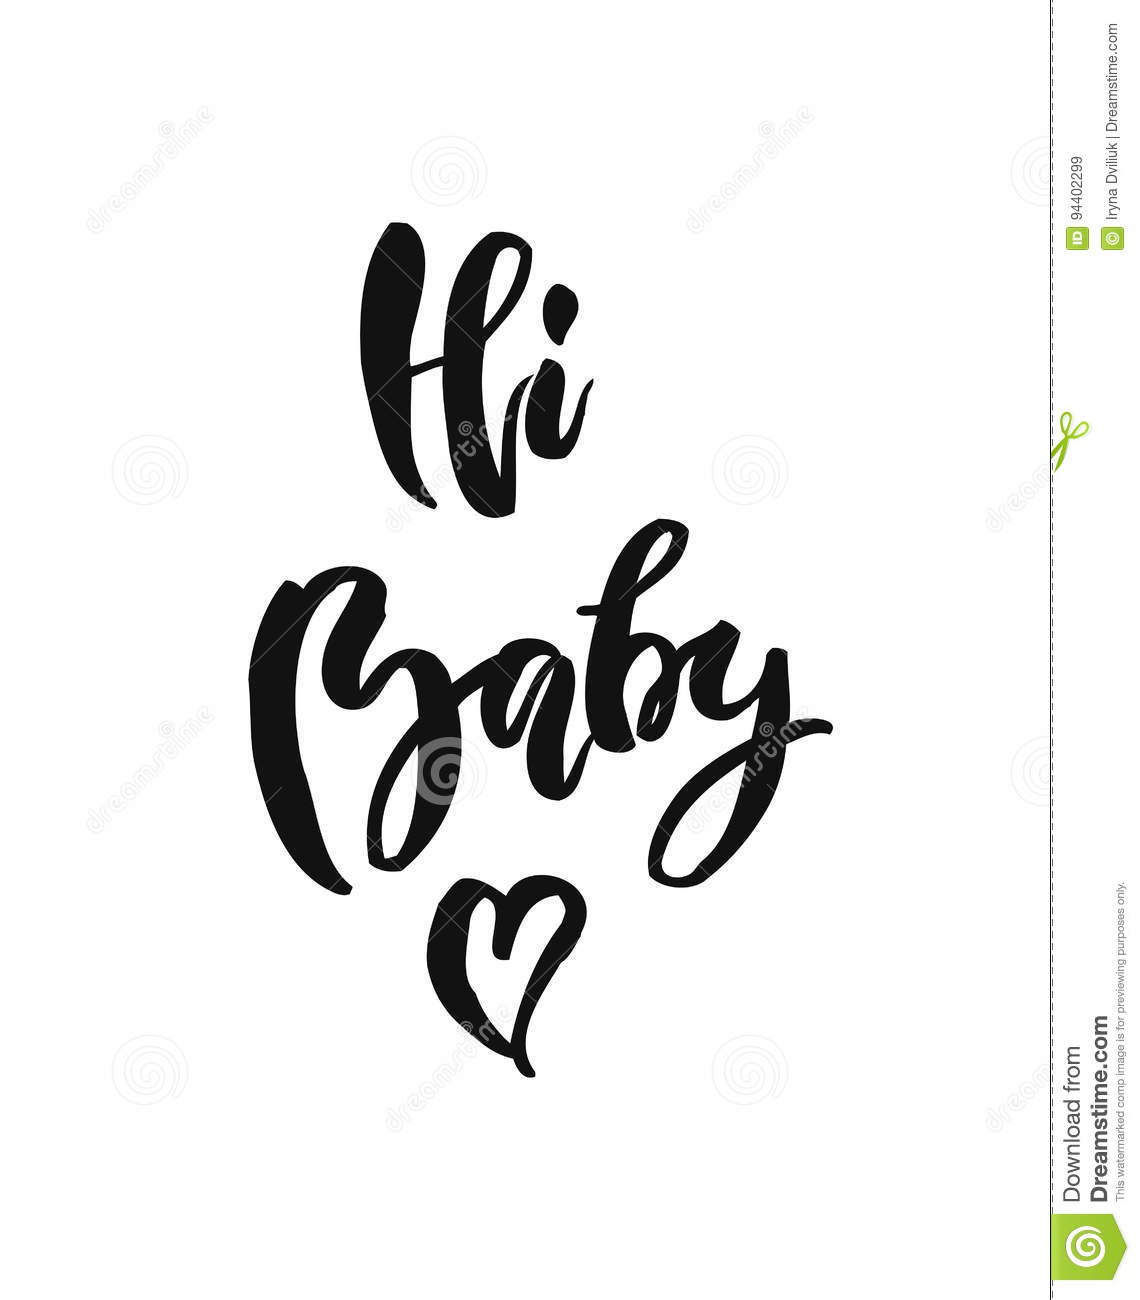 hi baby images type cartoons illustrations vector stock images 6292